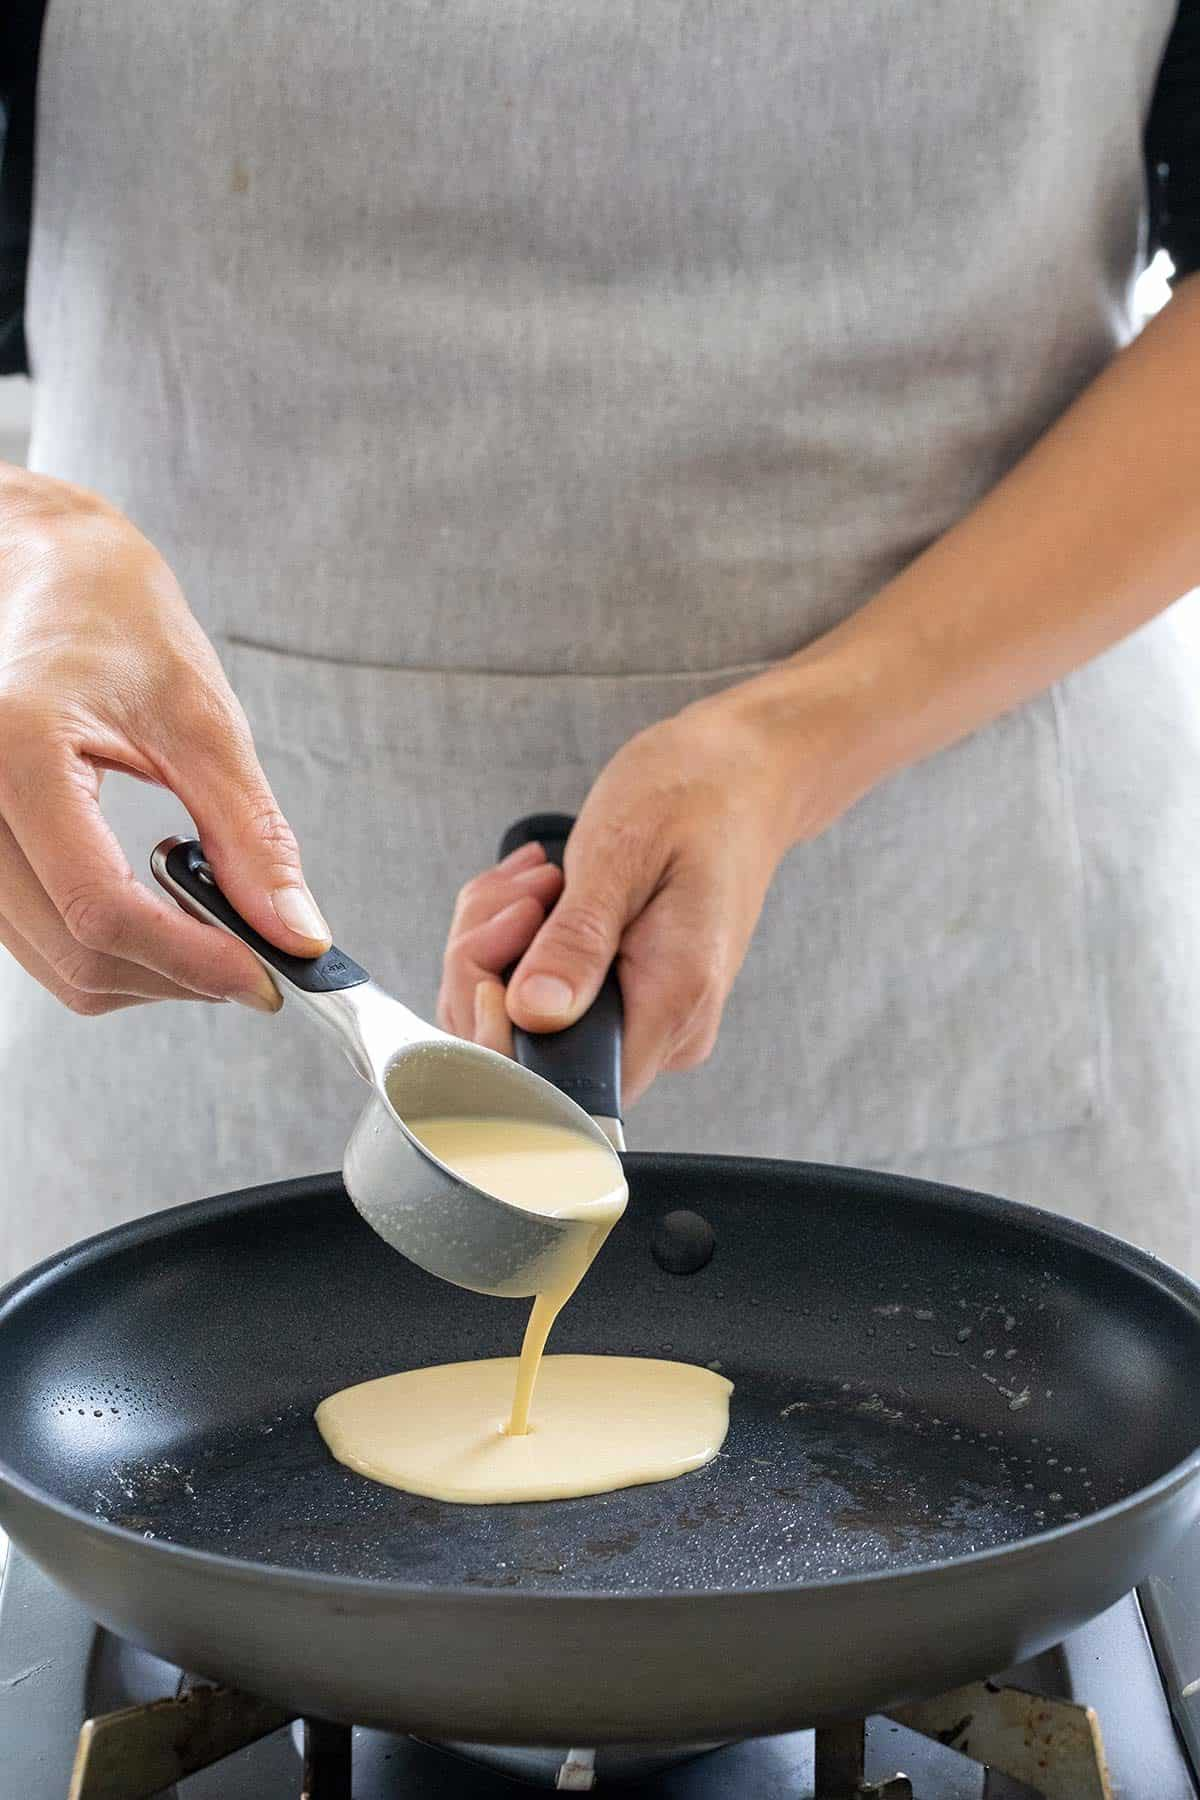 pouring crepe batter into a nonstick pan